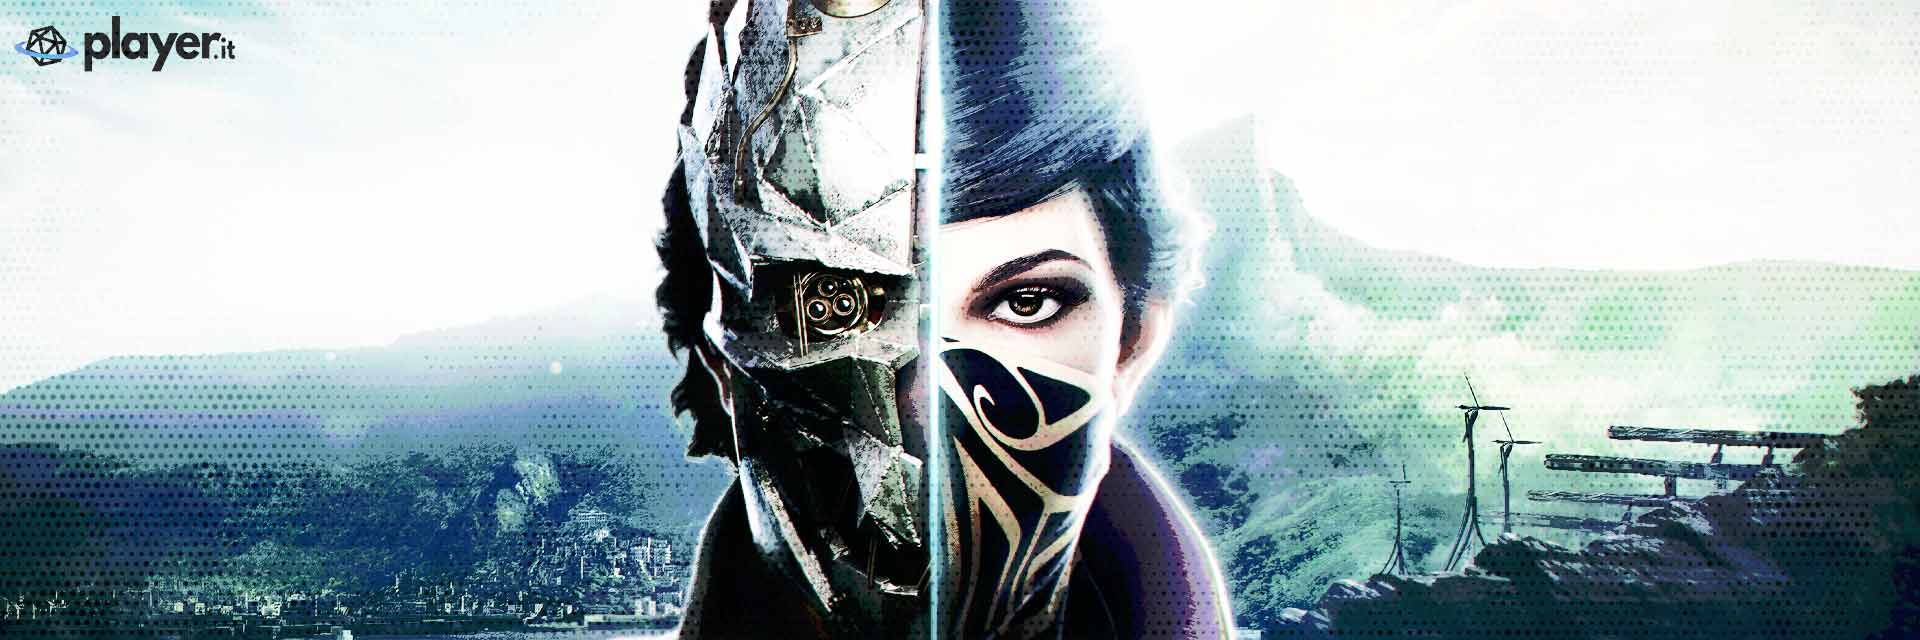 dishonored 2 wallpaper in hd